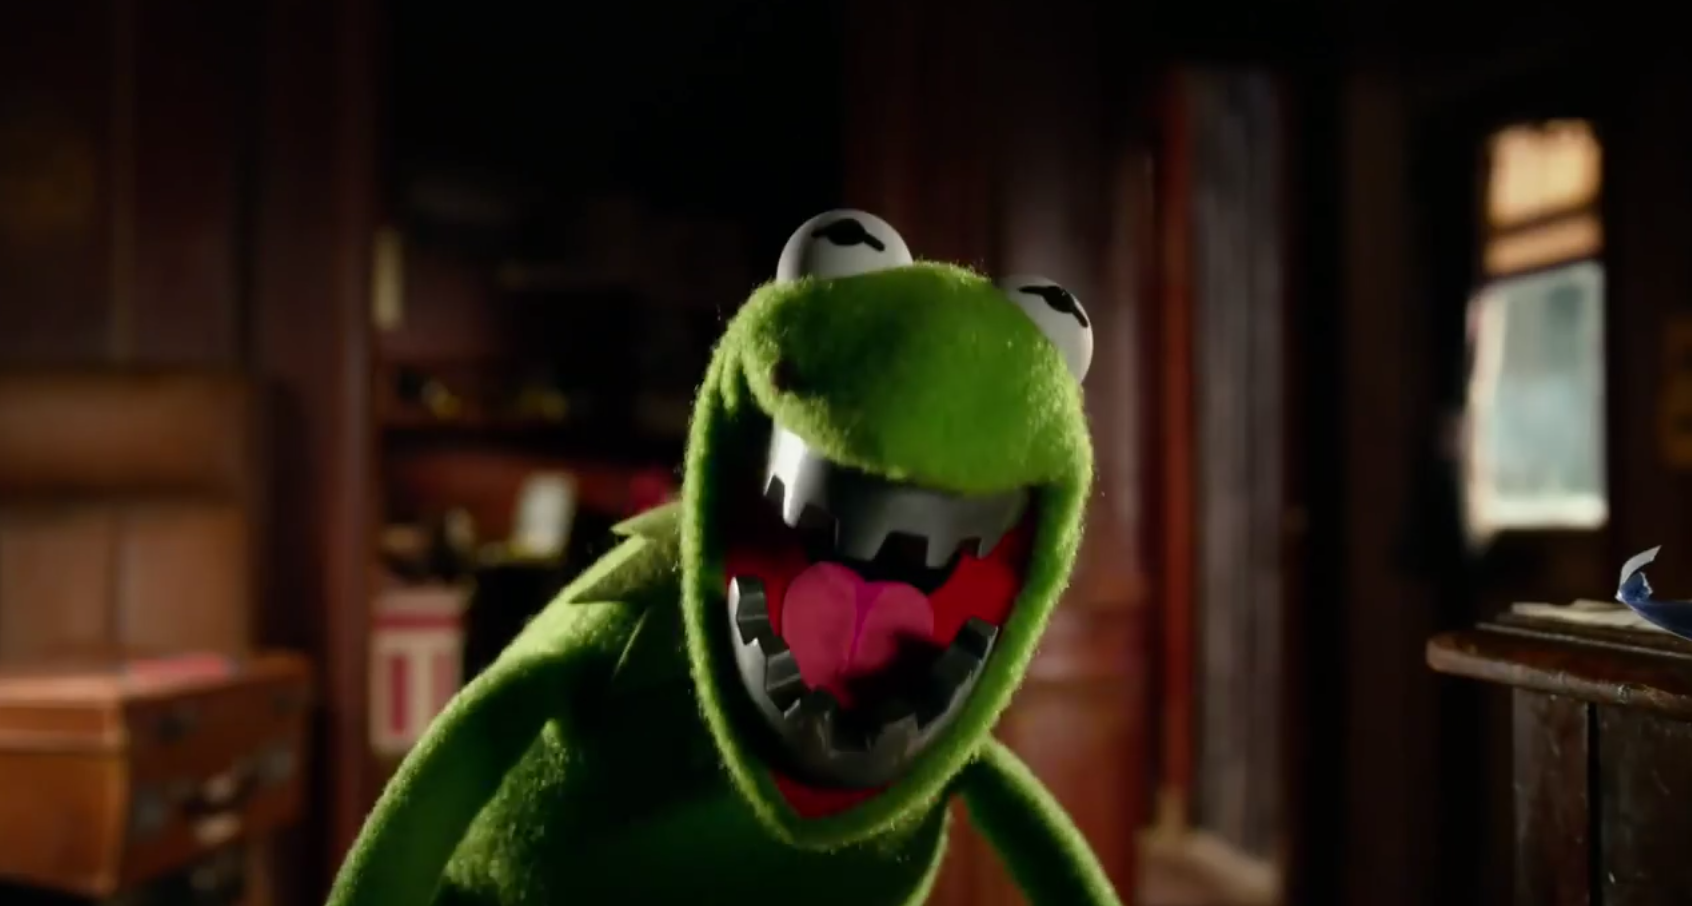 Kermit the frog angry - photo#14